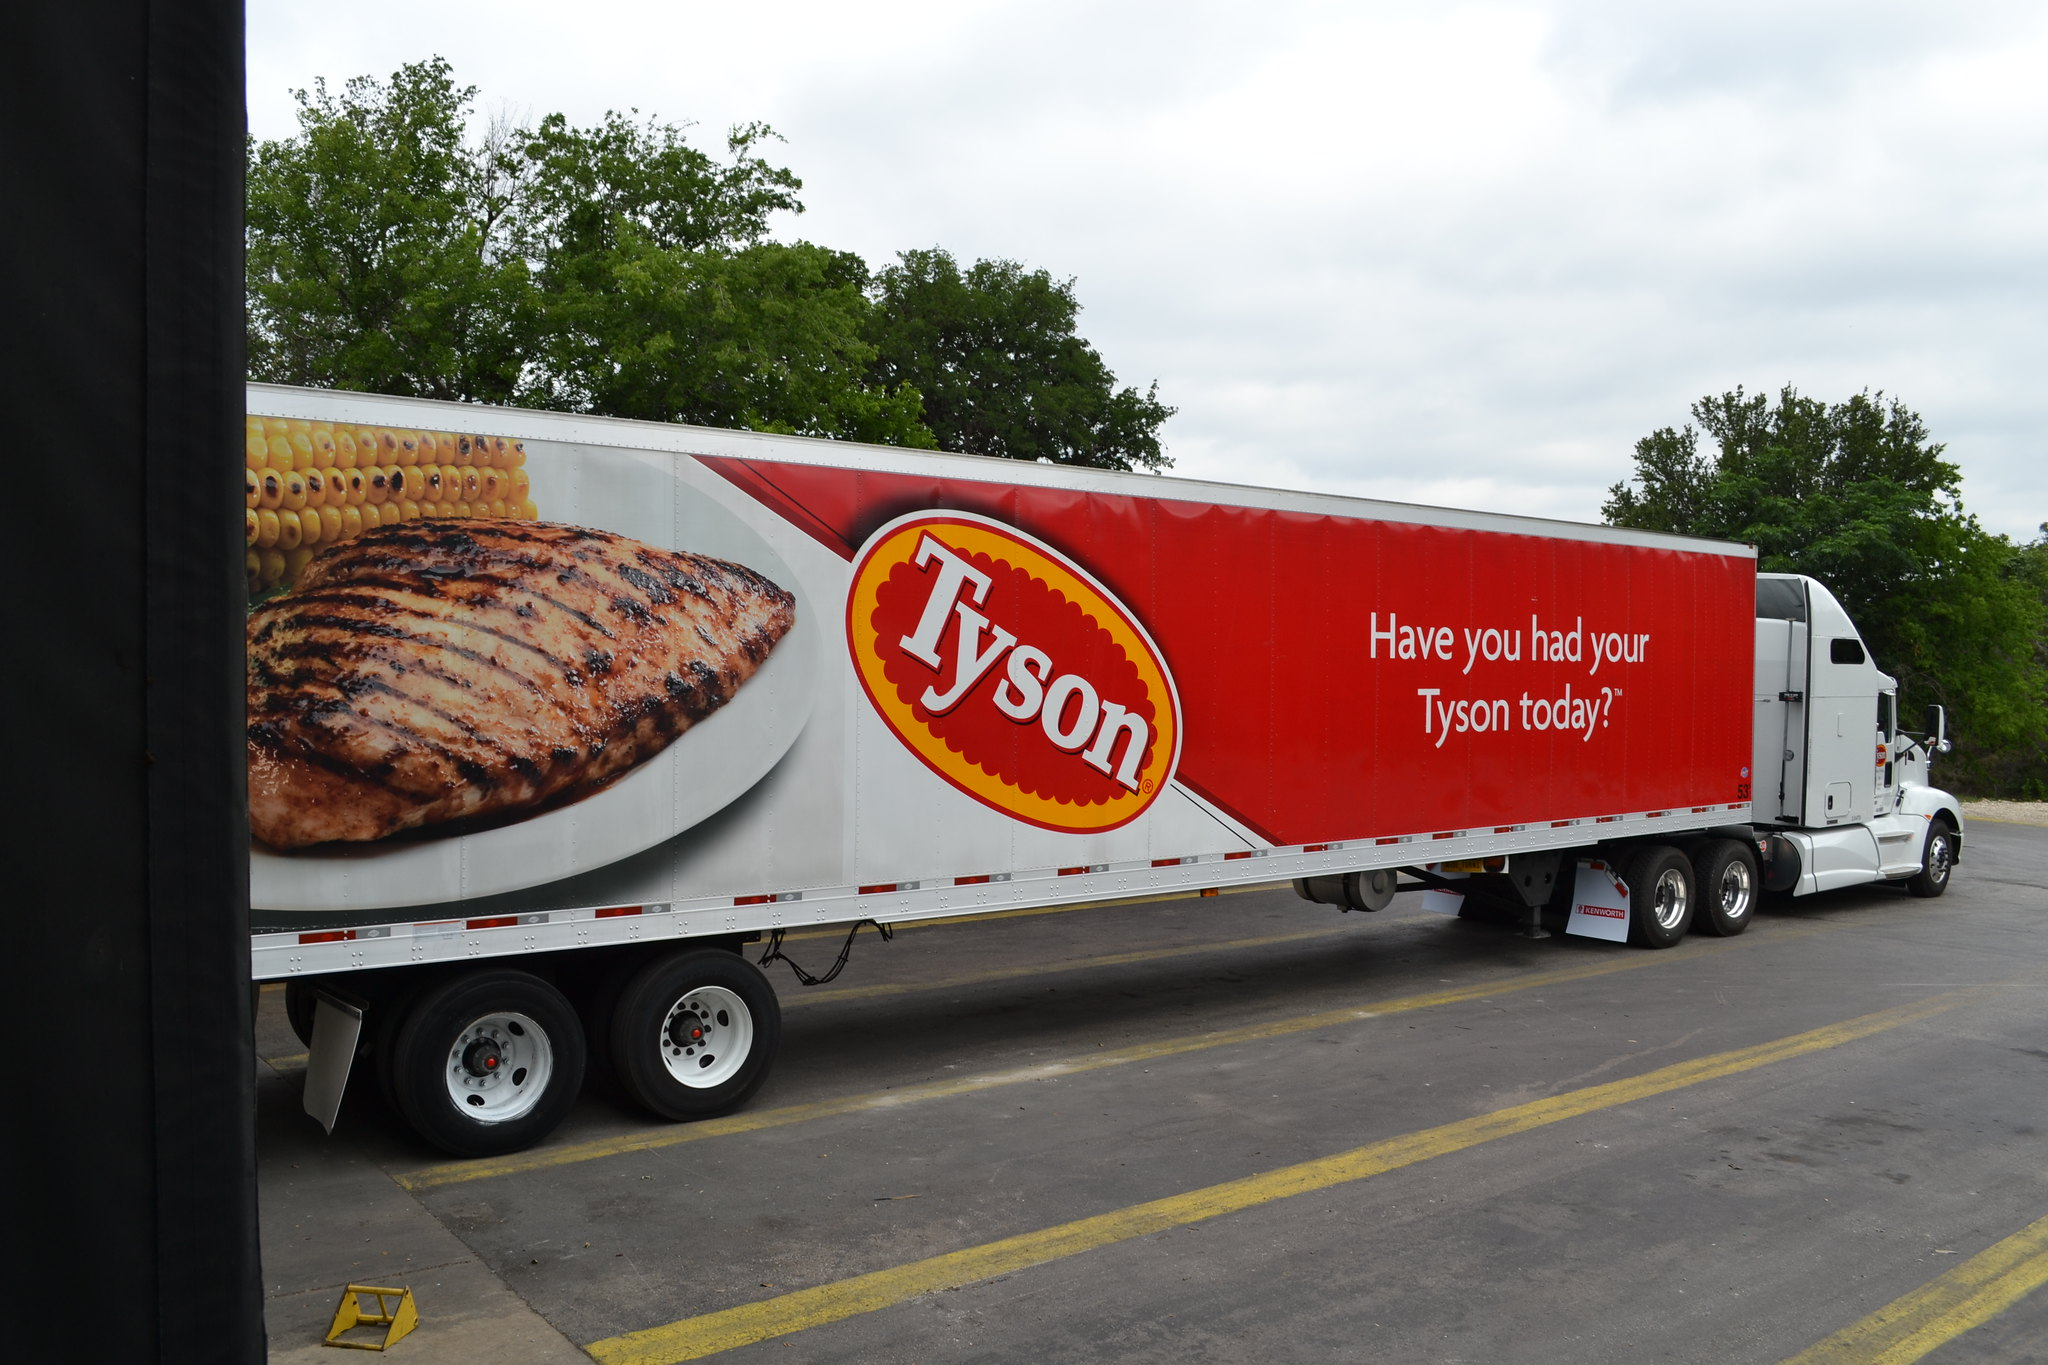 A semi-truck on a road with an image of a plate of food, the Tyson logo and 'Have you had your Tyson today?'